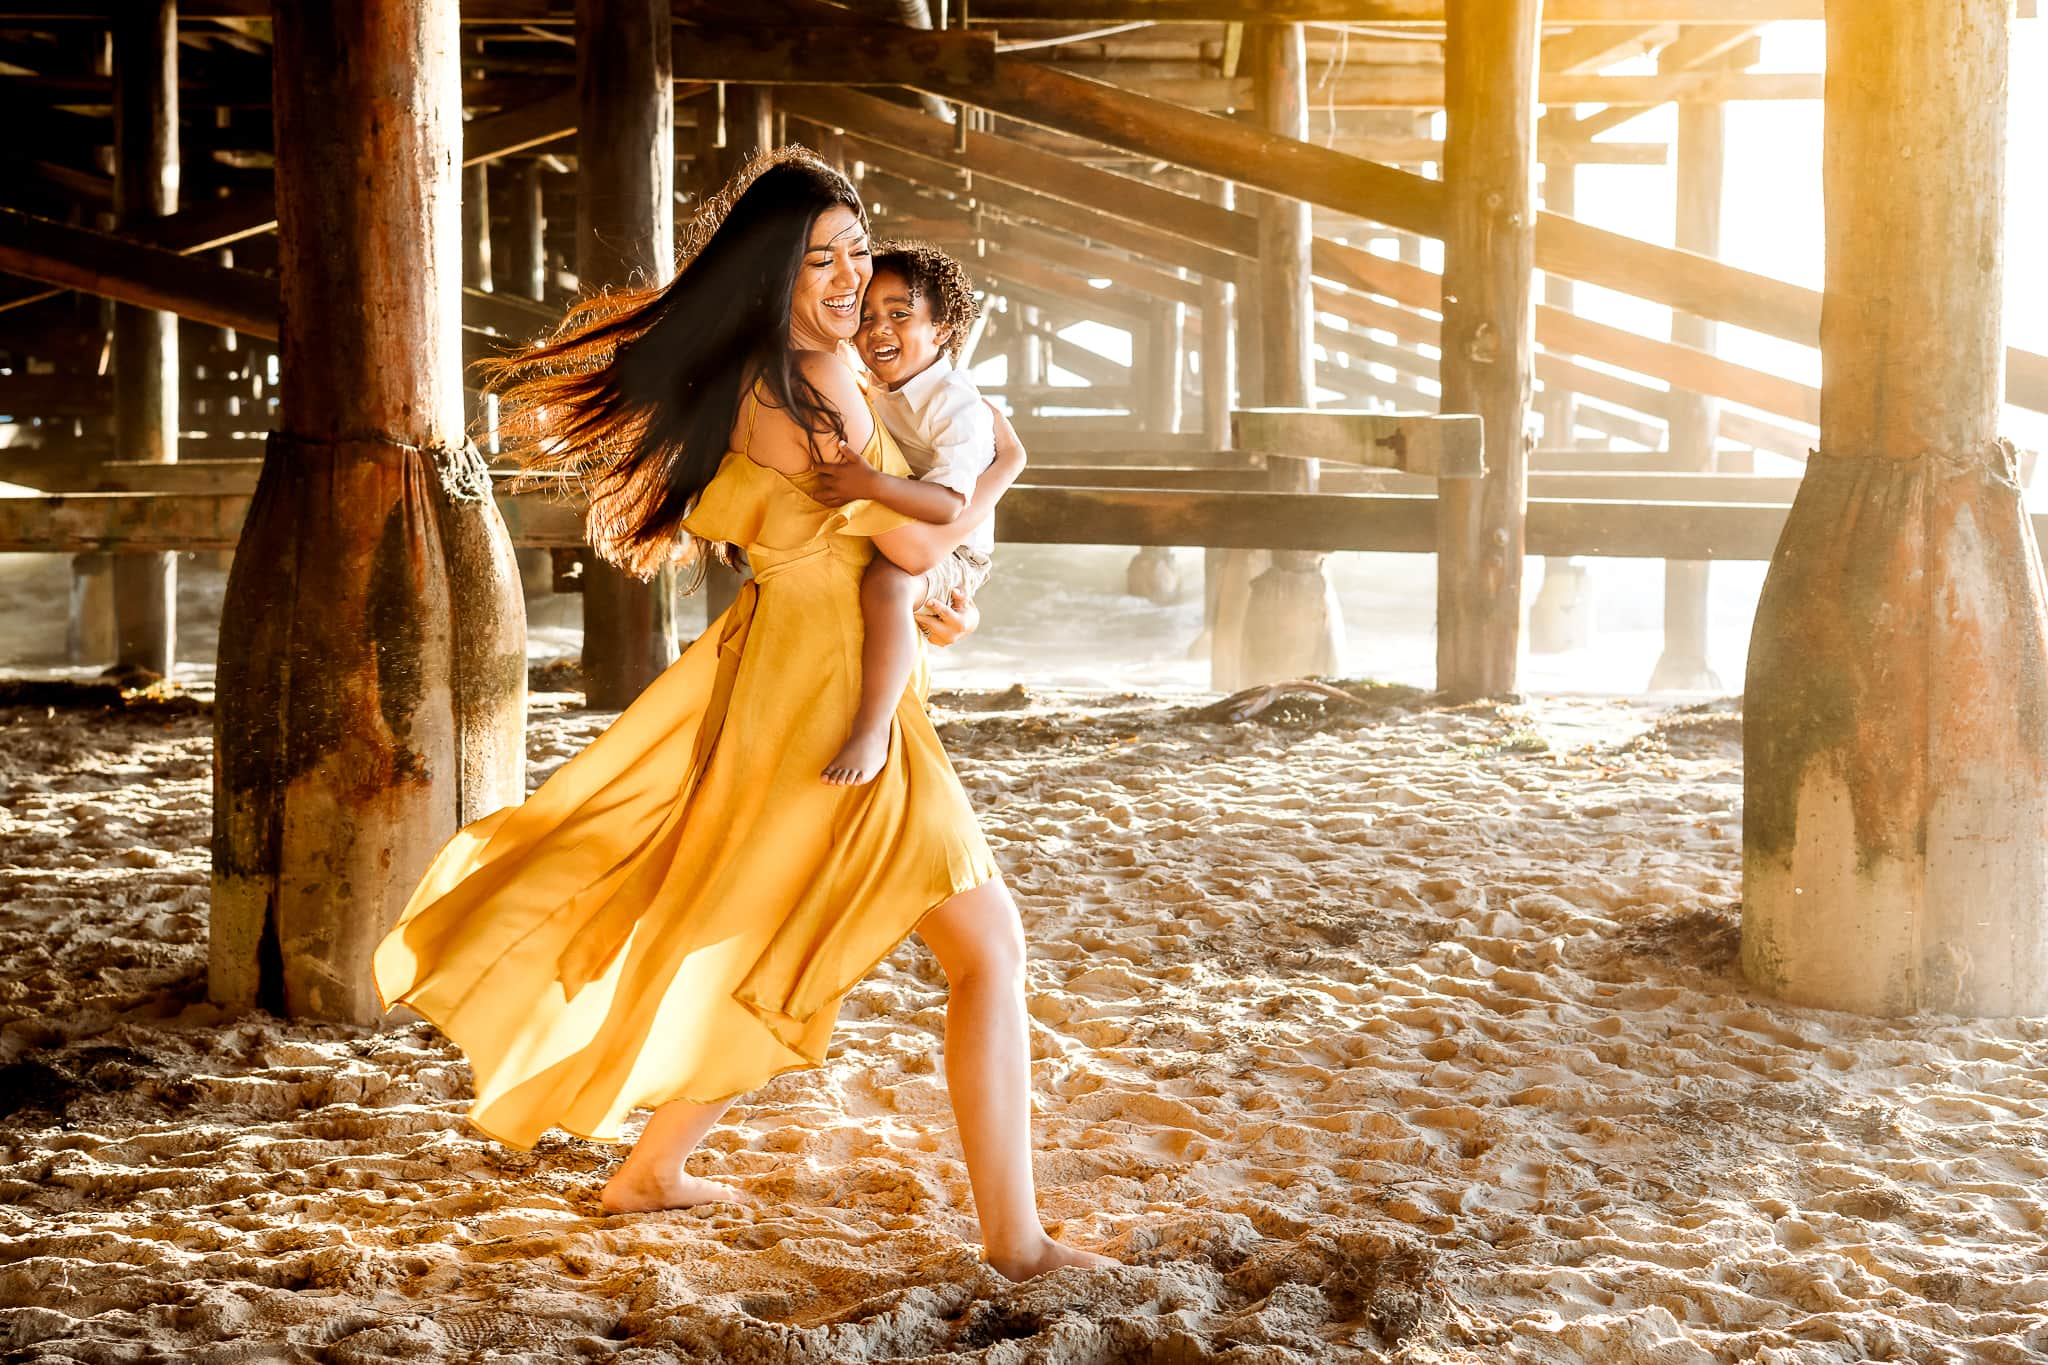 San Diego Family Photography, Mother and young child walking beneath pier by the ocean